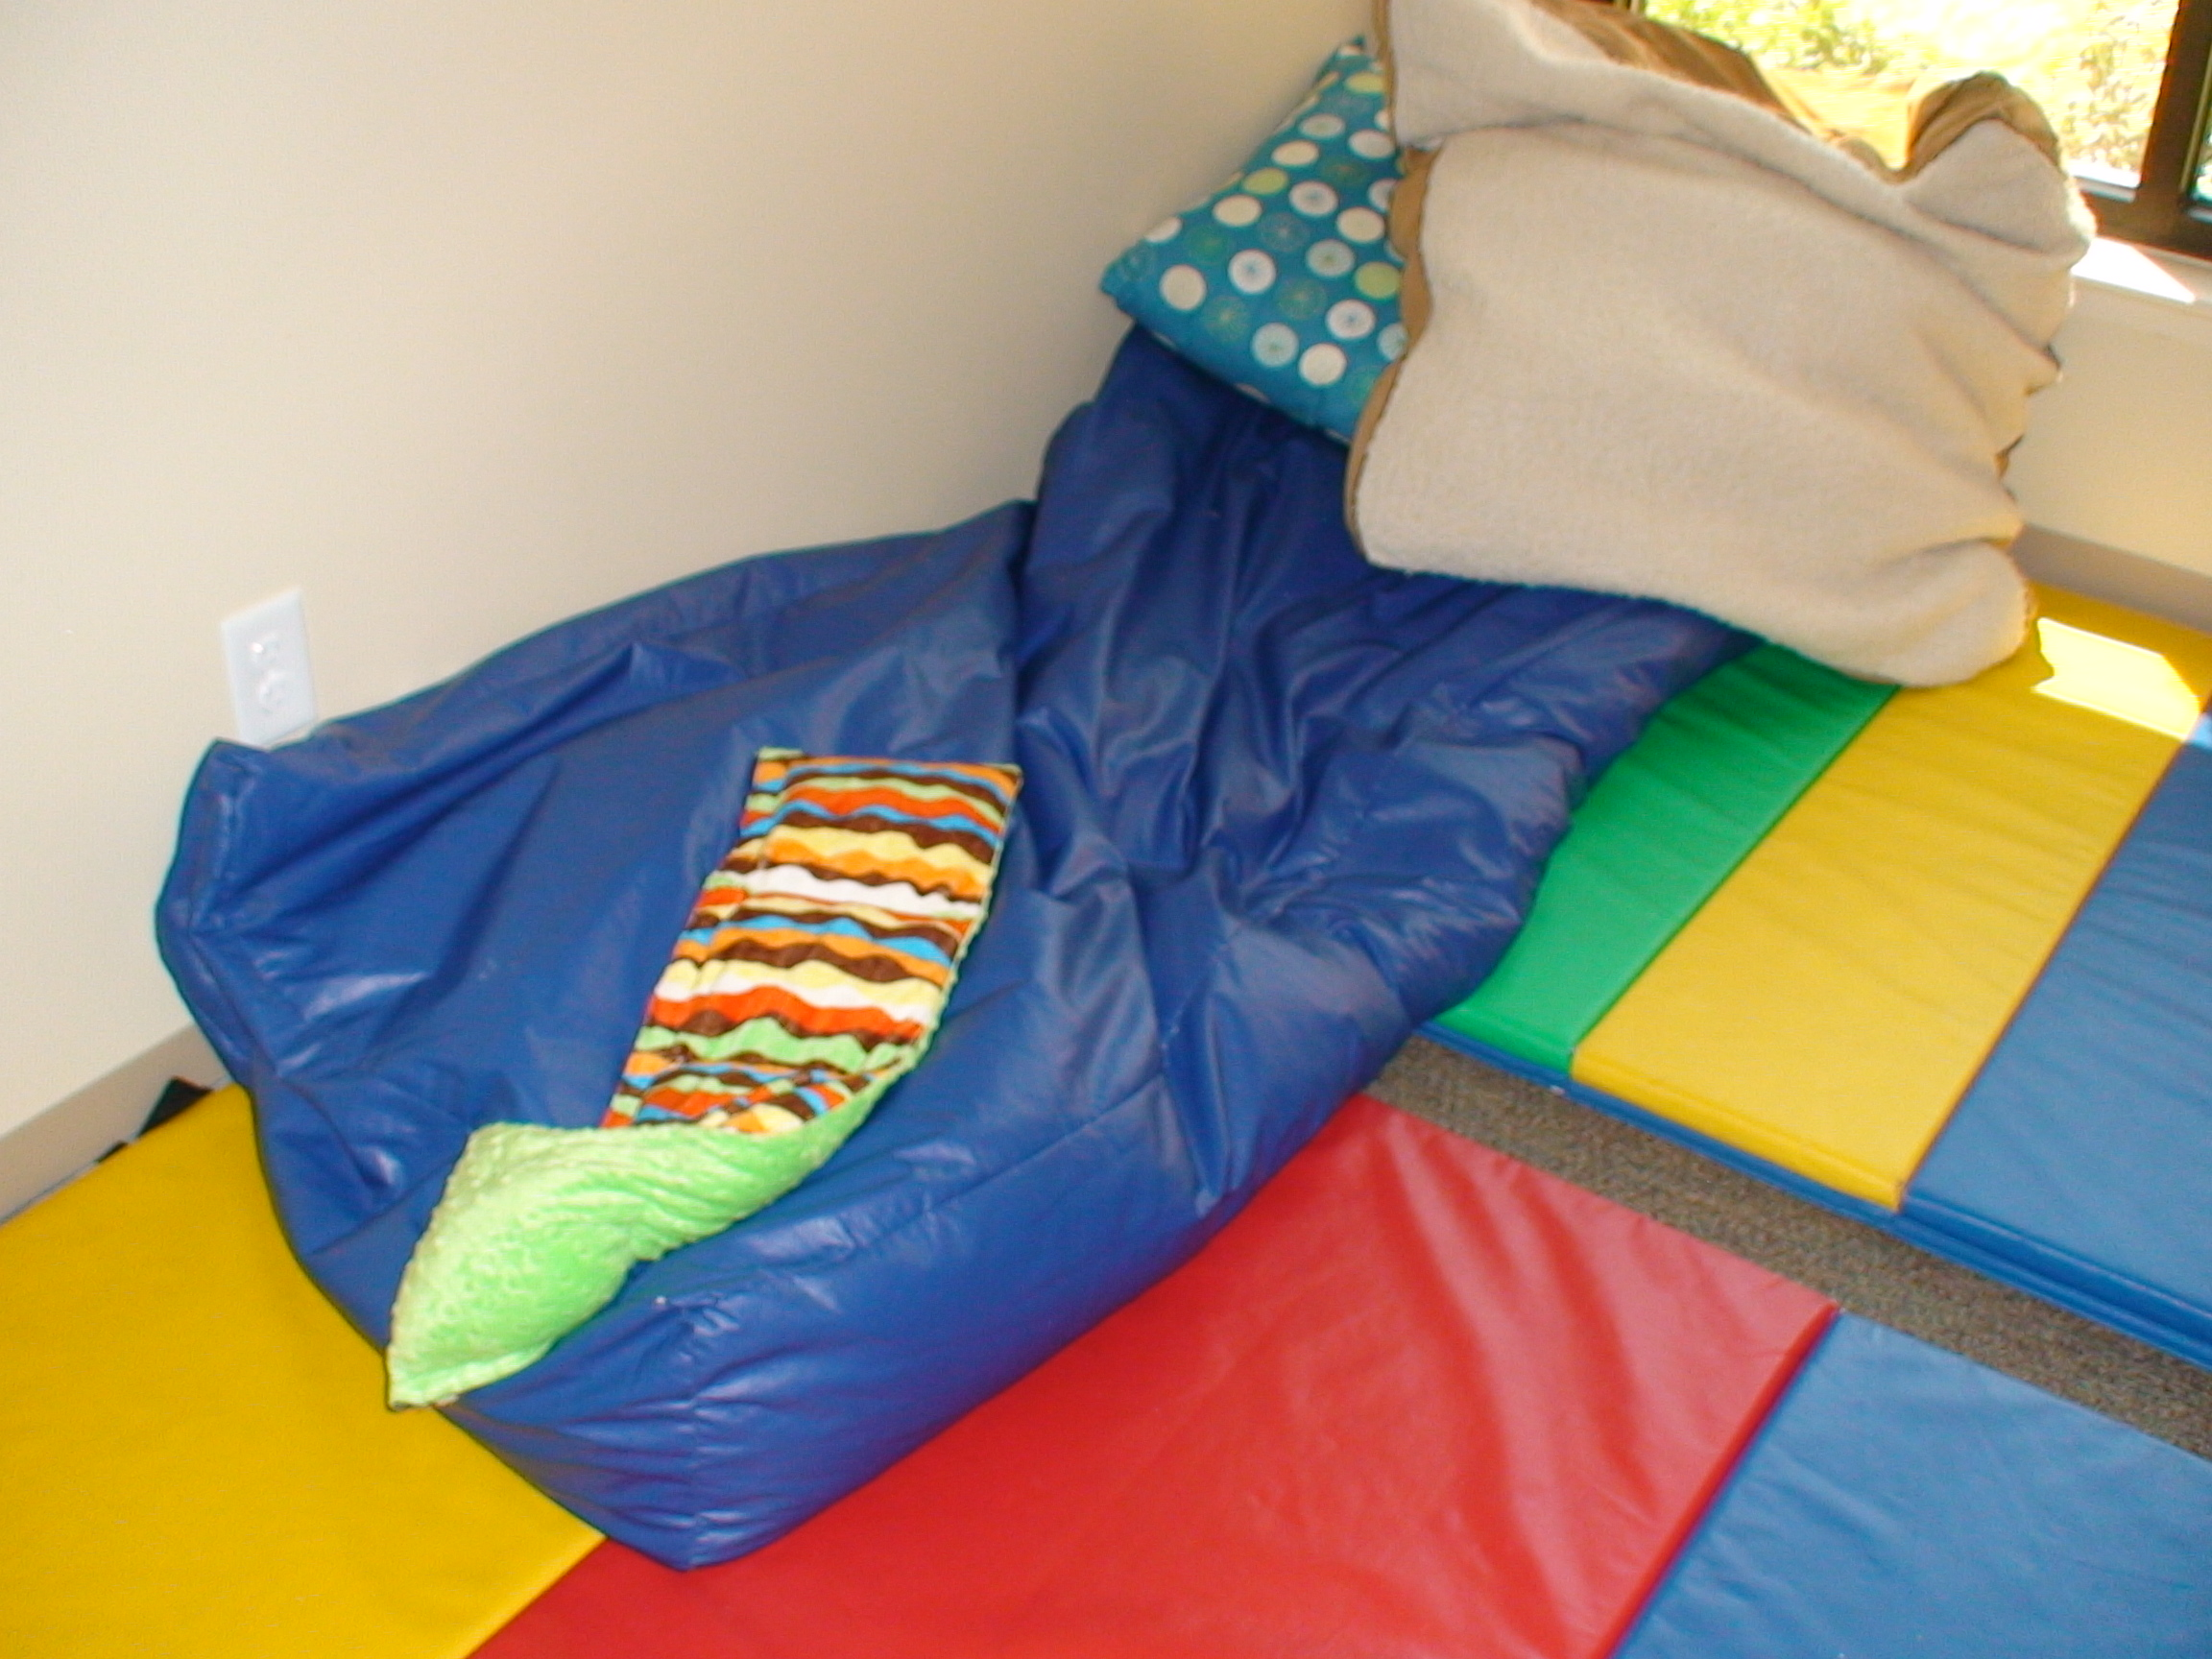 Special Needs Ministry Quiet Room The Inclusive Church